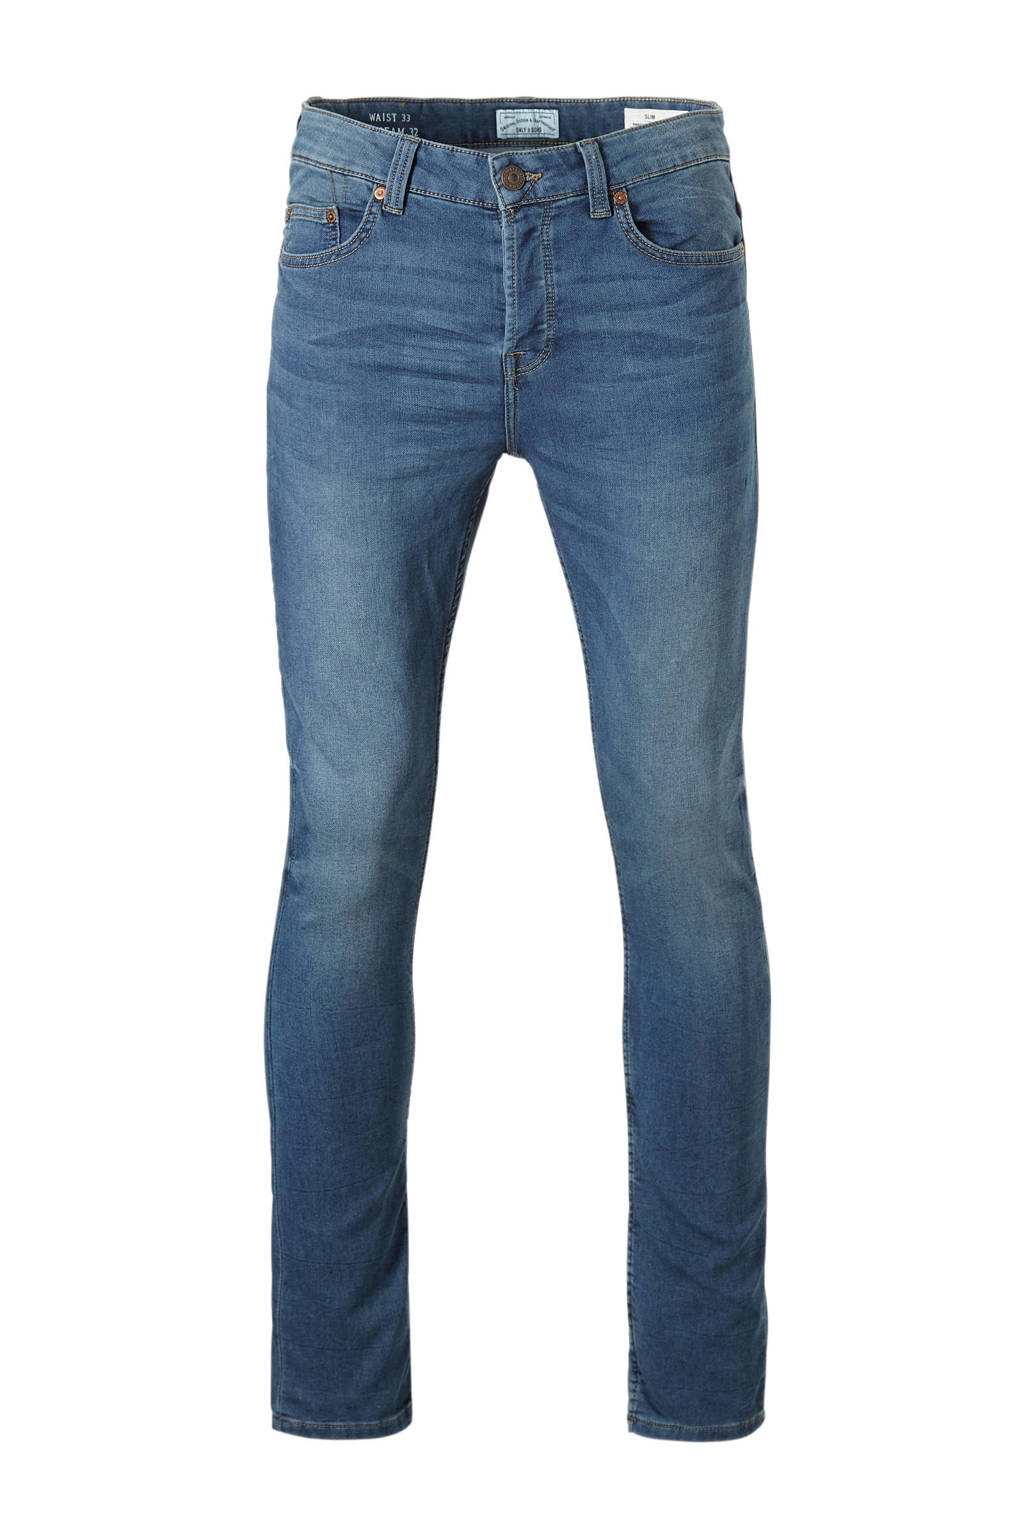 Only & Sons Loom slim fit jog denim, Blauw